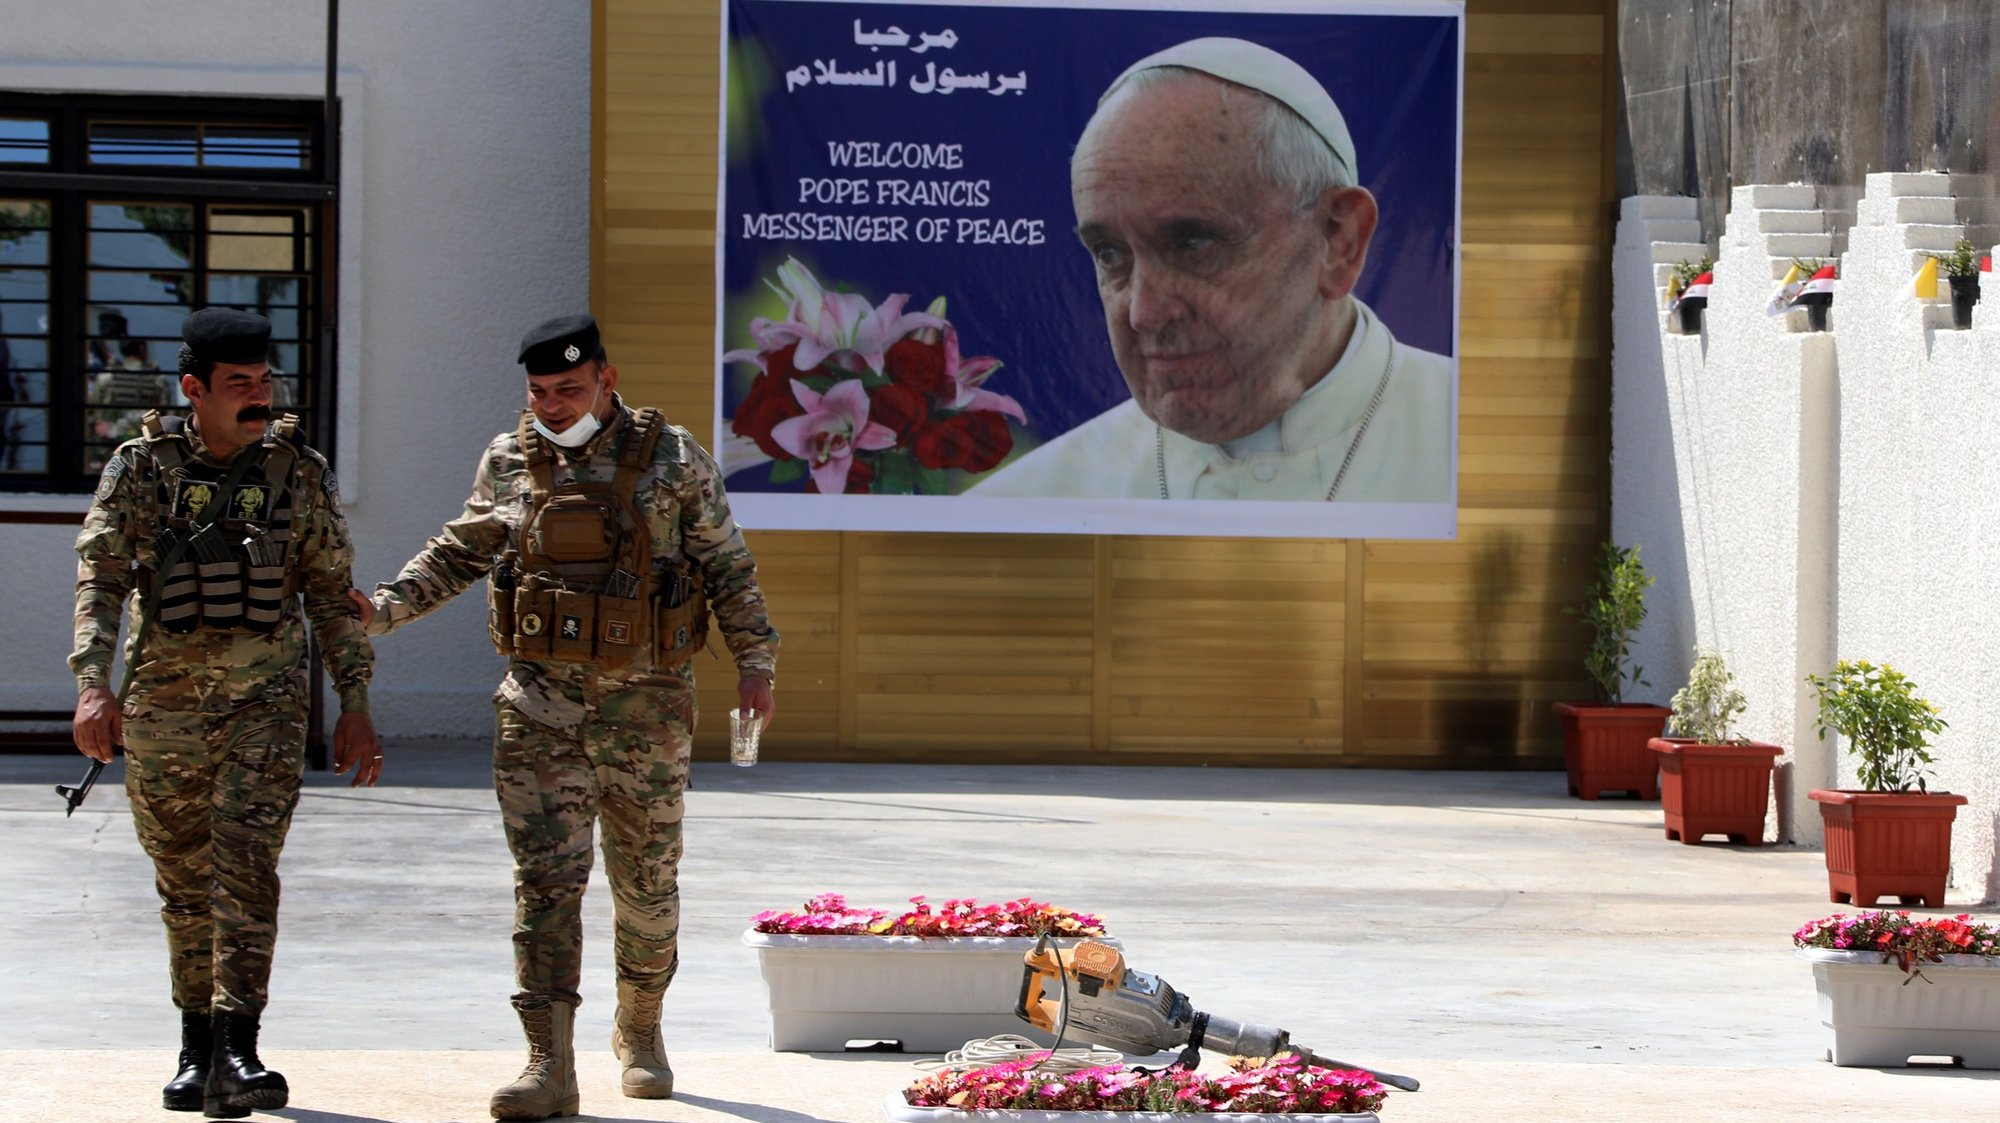 epaselect epa09044899 Iraqi policemen walk next to a posters depicting the picture of Pope Francis at the St. Joseph Chaldean Catholic Church in Baghdad's Karada district, Iraq on 01 March 2021. Pope Francis will visit St. Joseph church in Baghdad, during his trip to Iraq from 05 to 08 March 2021.  EPA/AHMED JALIL